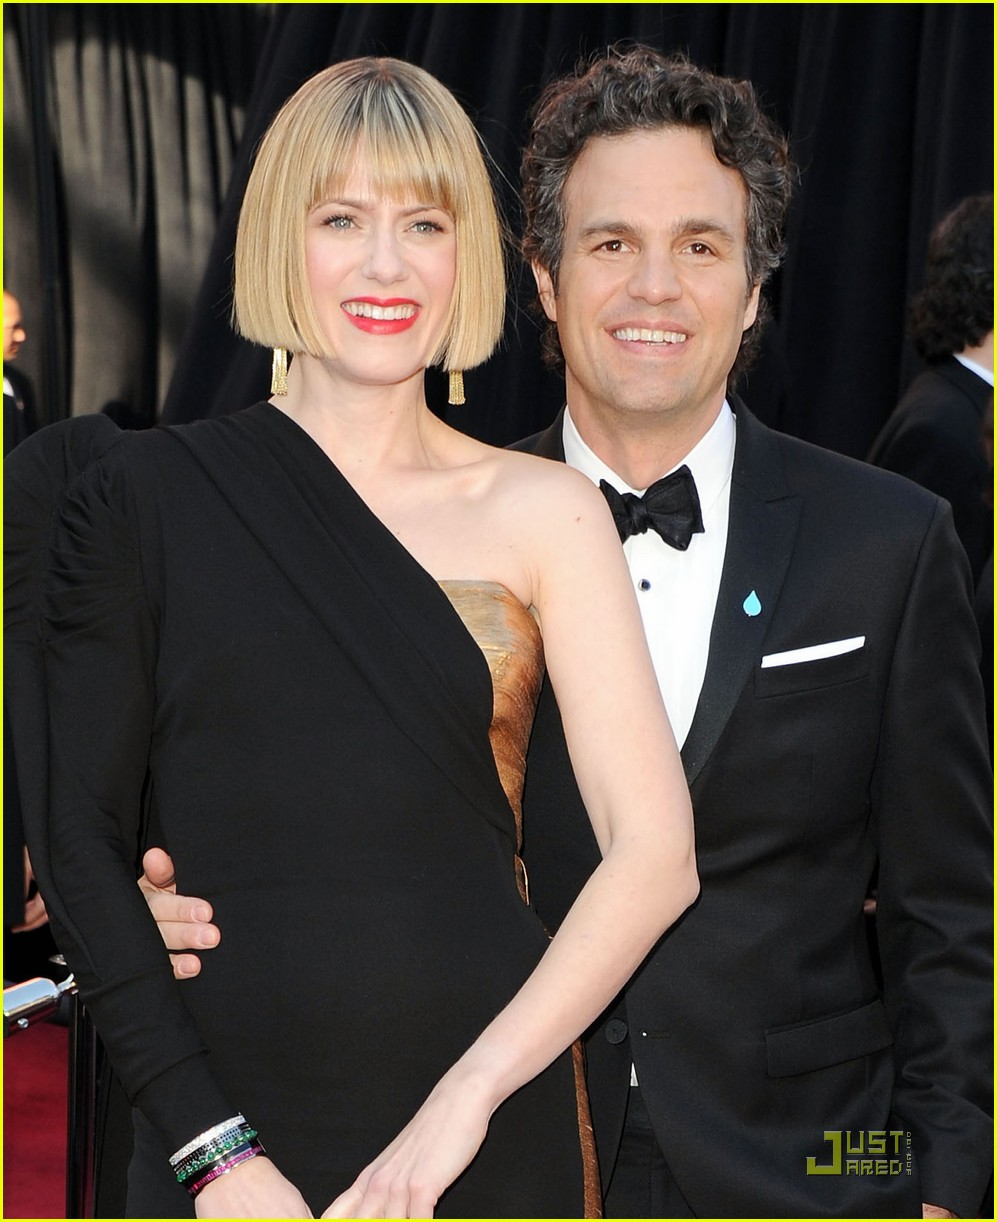 mark ruffalo sunrise coigney oscars 2011 07